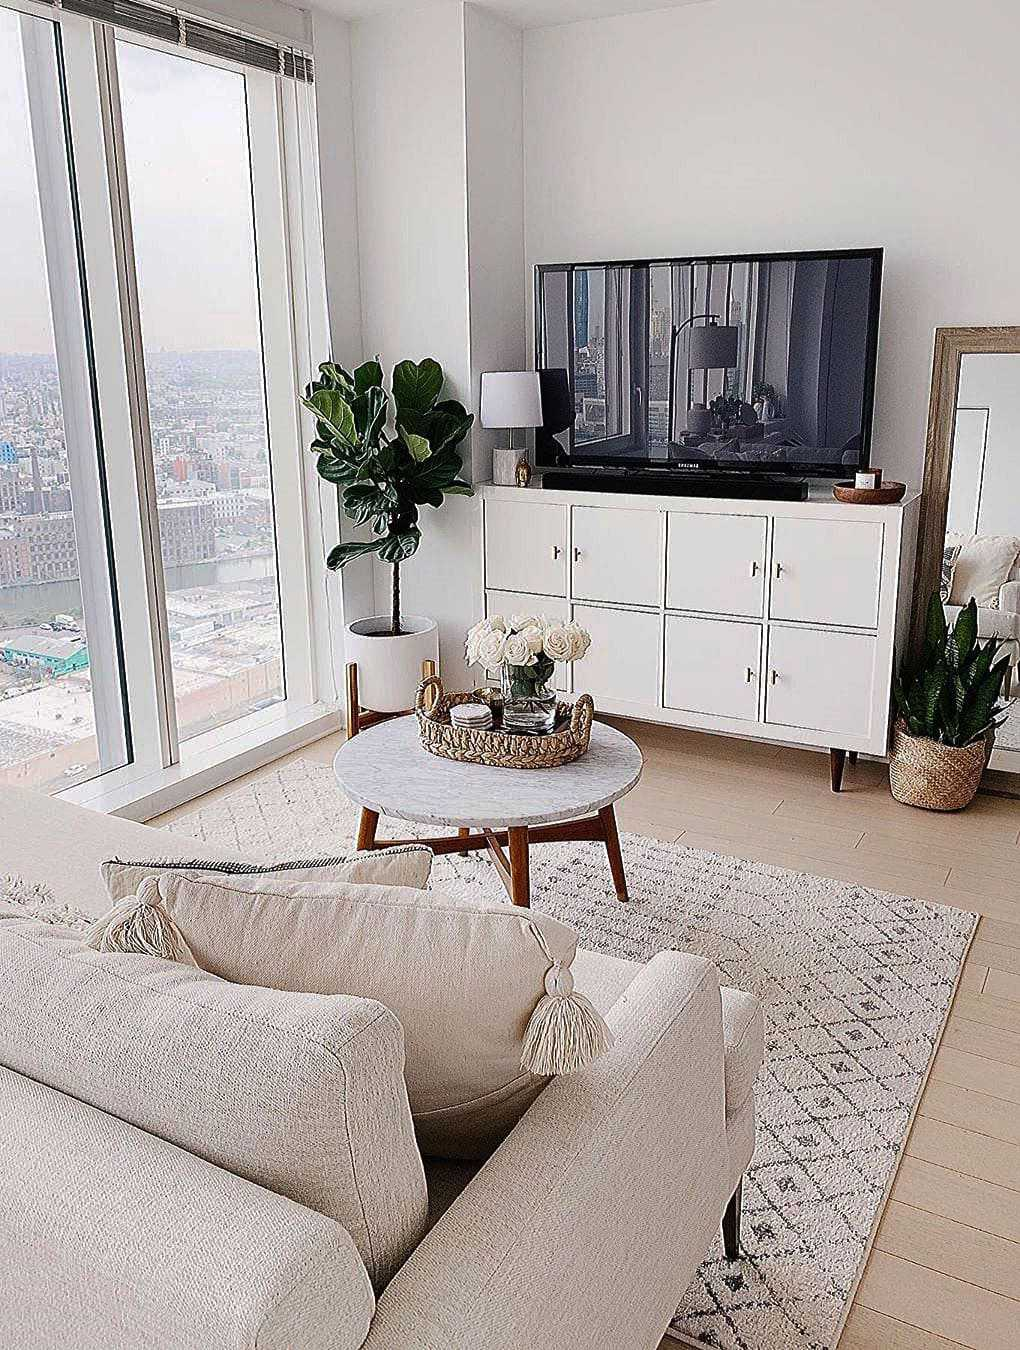 Useful And Stylish Living Room Design ideas For Apartment Residents001